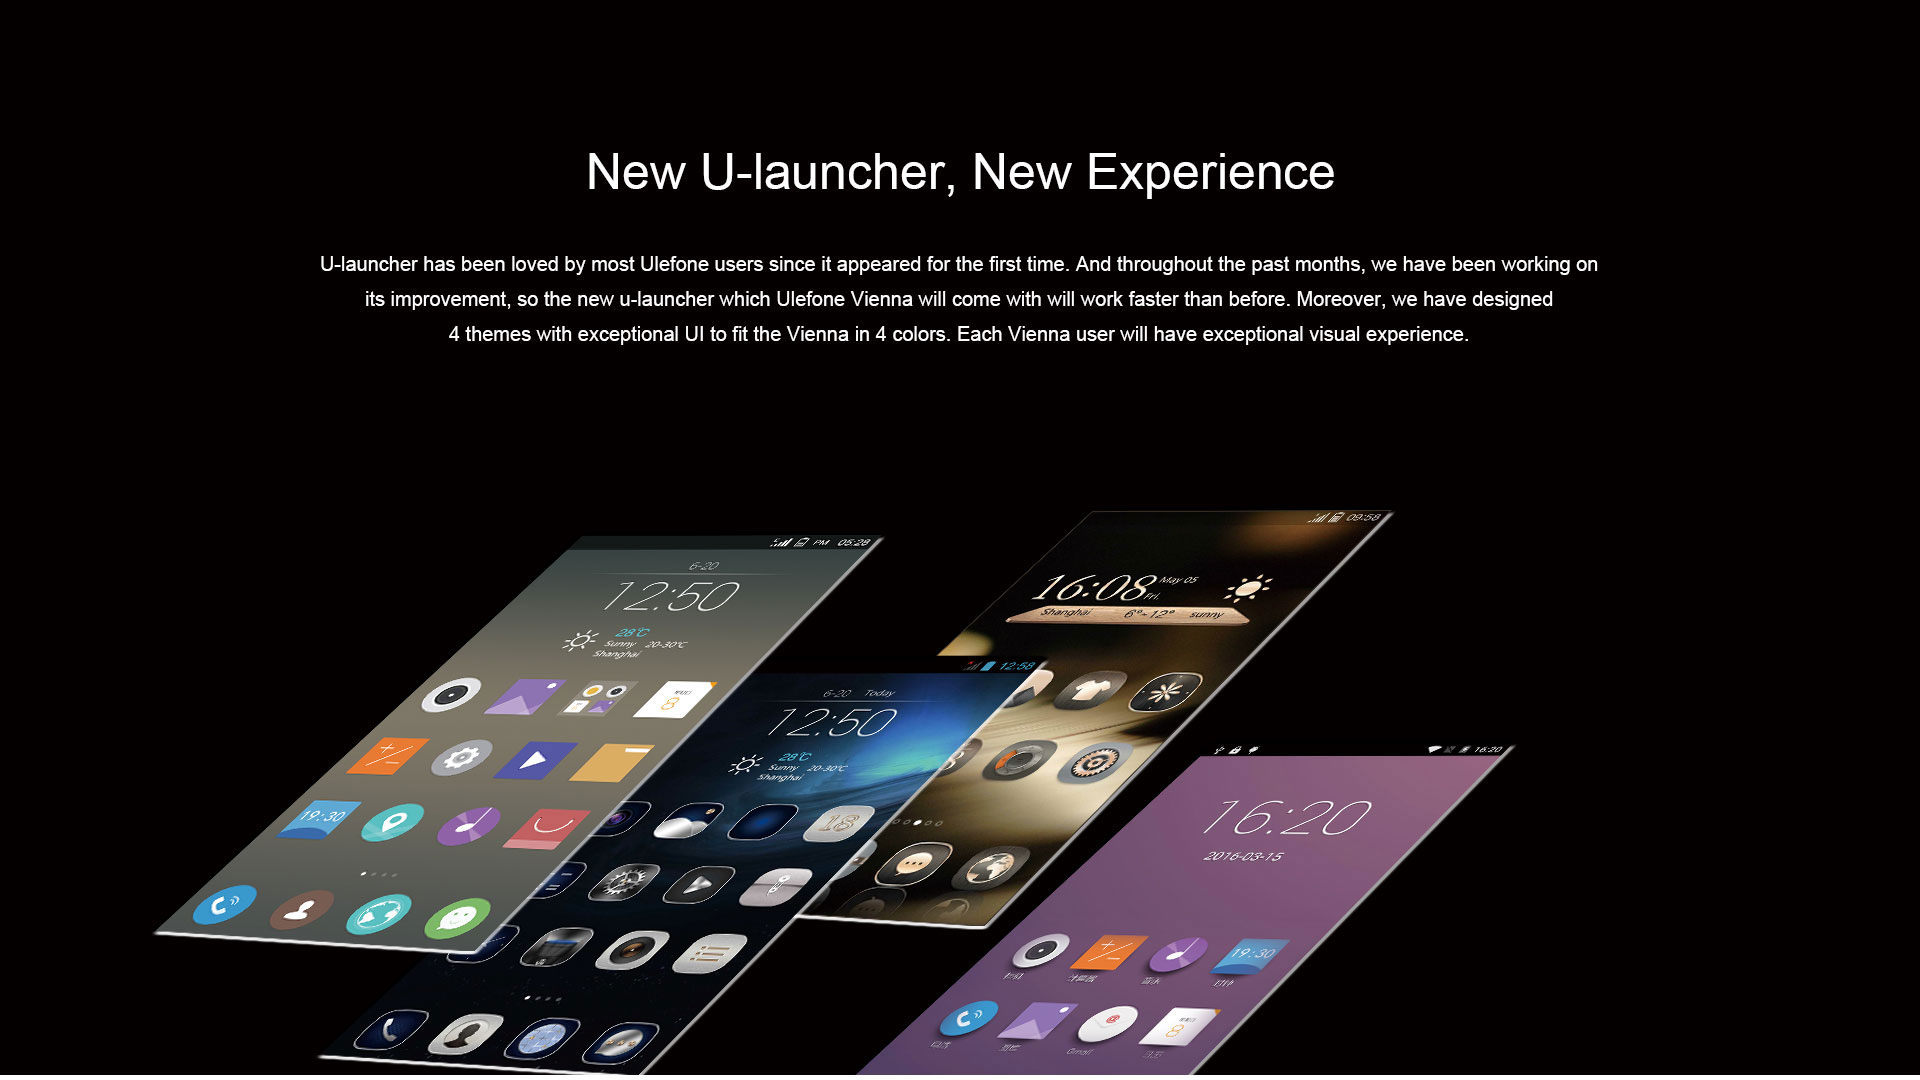 Ulefone Vienna displaying 4 different themes of the U-launcher.